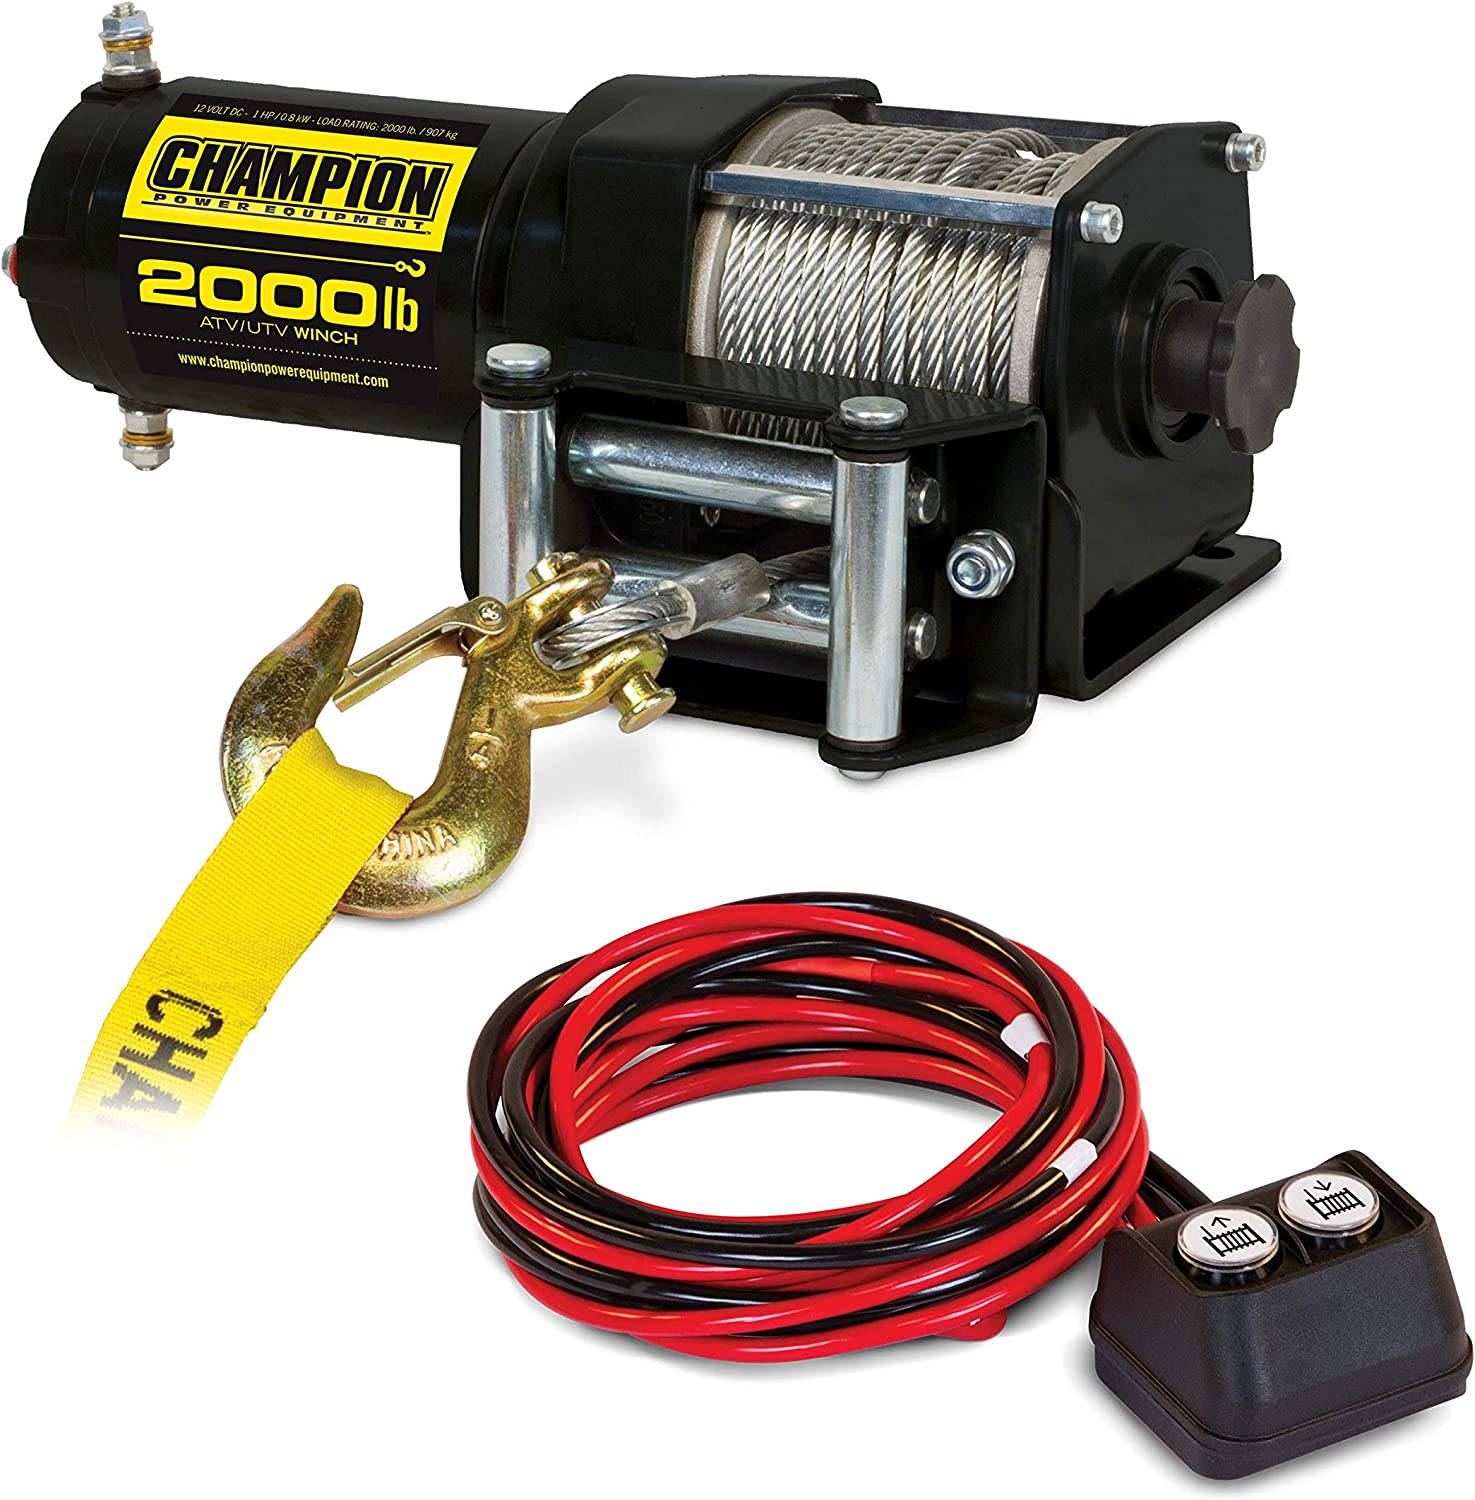 Amazon.com: Champion 2000-lb. ATV/UTV Winch Kit: AutomotiveAmazon.com